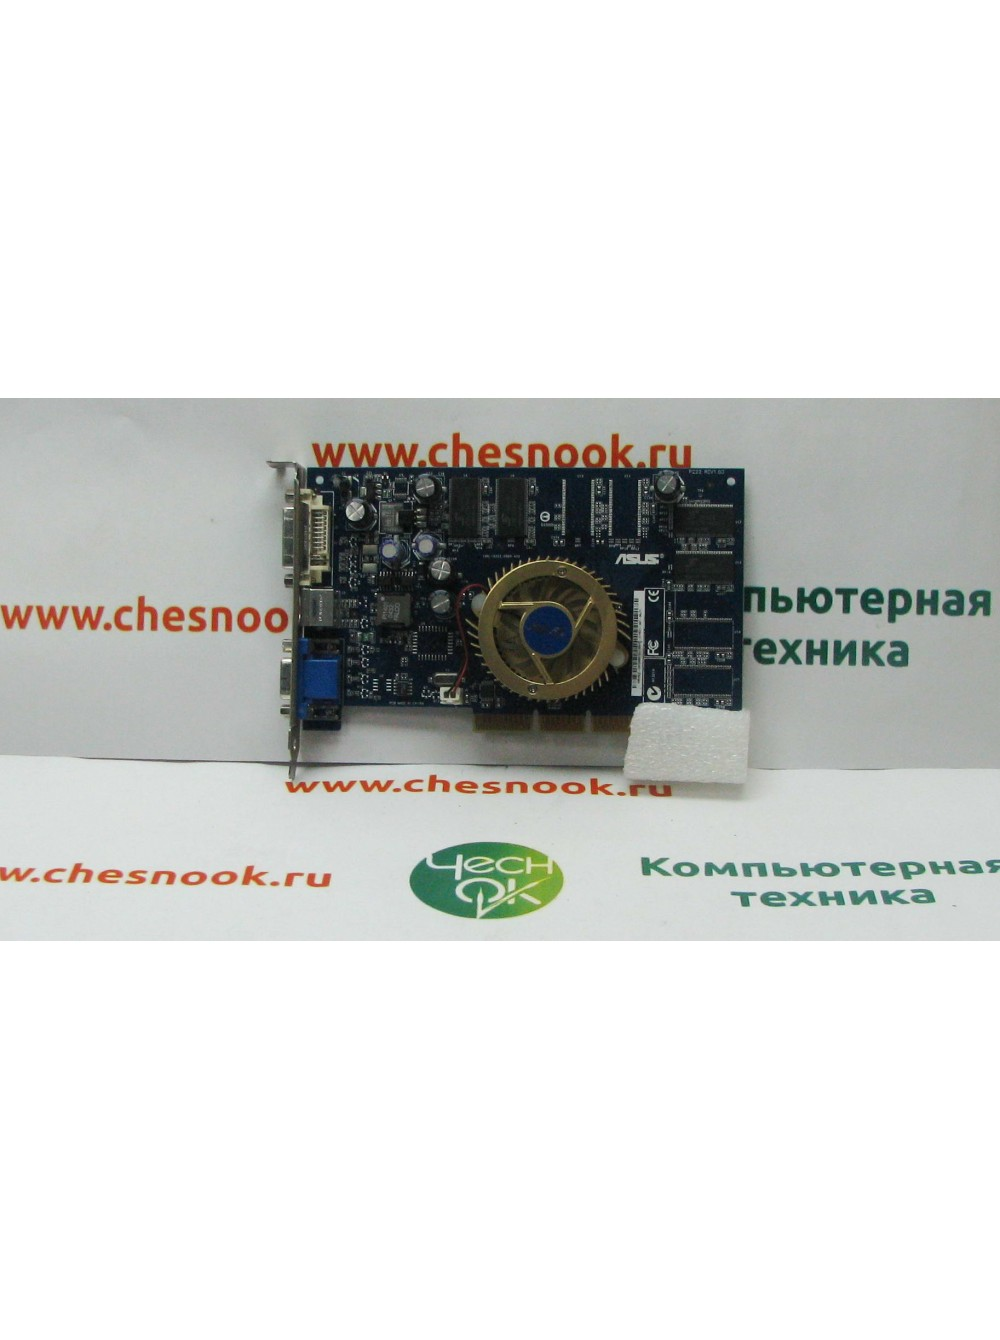 ASUS V9570LE DRIVER FOR WINDOWS 7